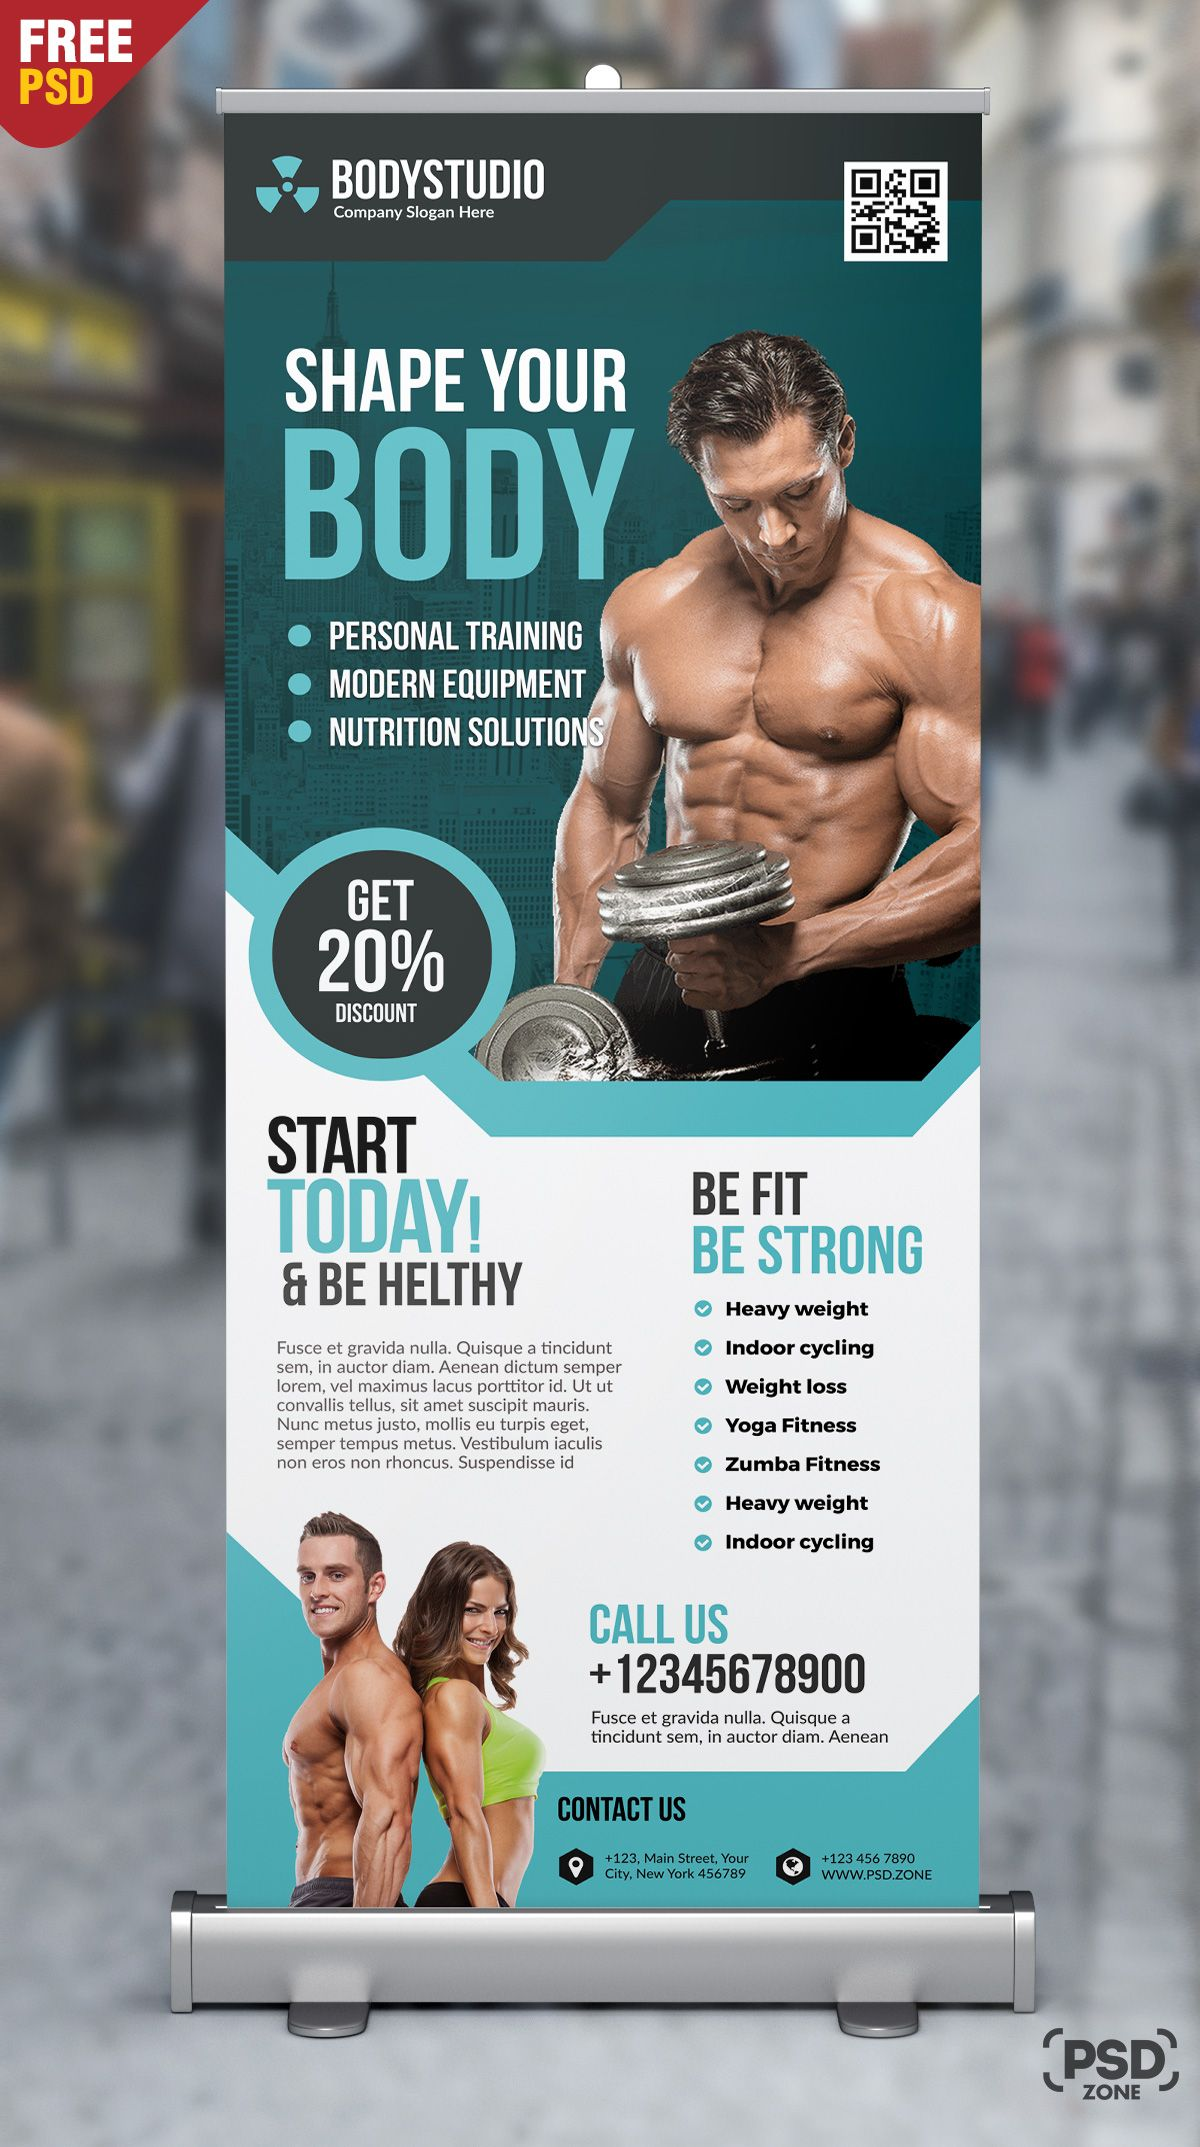 Gym Roll Up Banner Free Psd Roller Banner Design Banner Design Layout Banner Ads Design